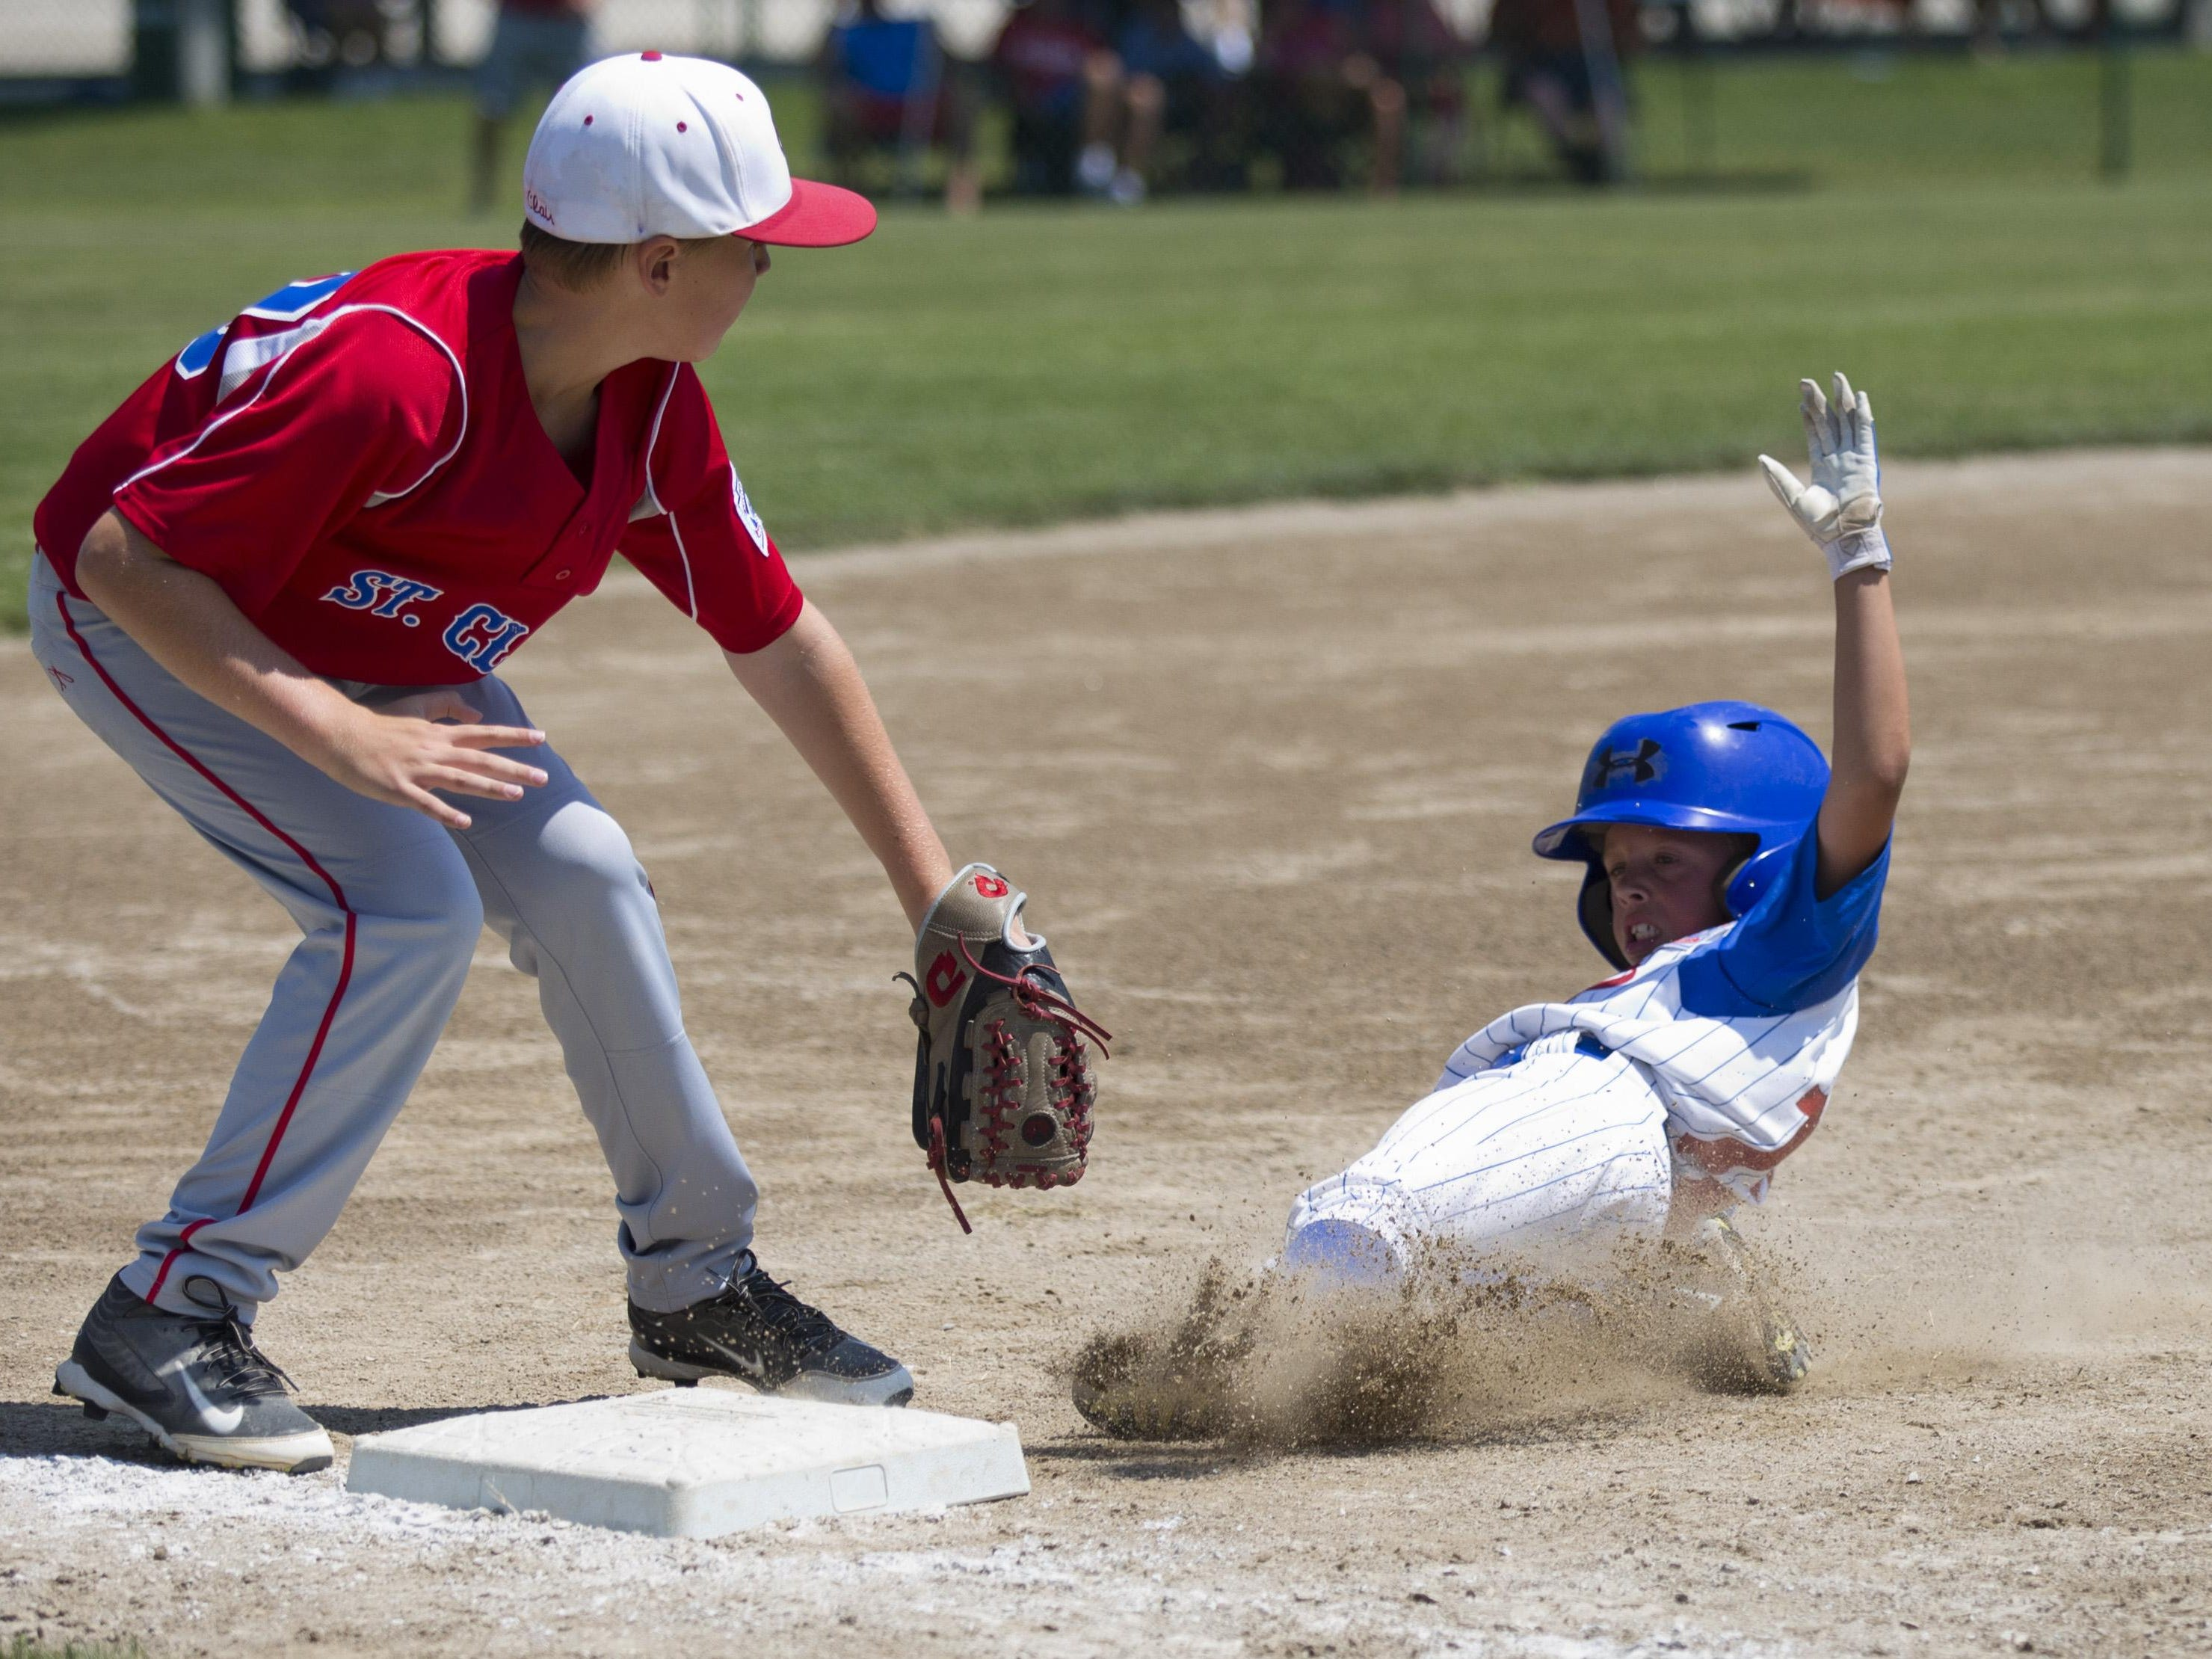 Carter Hurlburt makes a tag at third during a 10-and-under state semifinal baseball game Tuesday, July 28, 2015 in St. Clair.